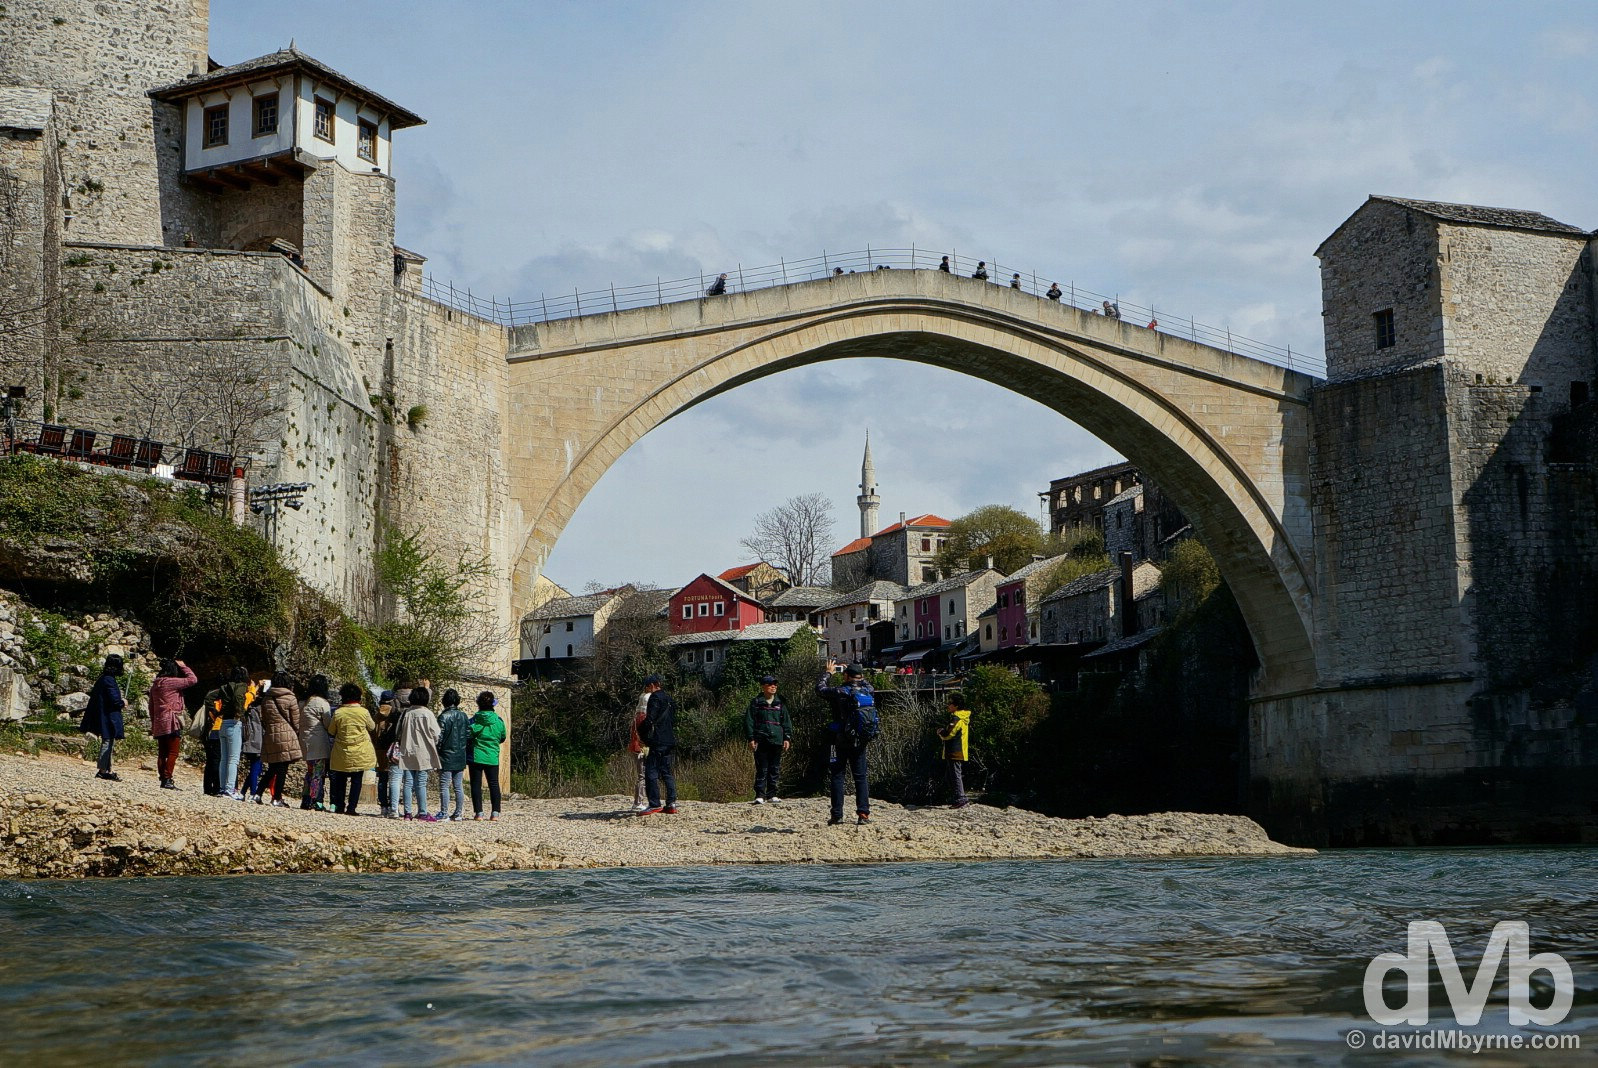 The iconic Stari Most (Old Bridge) over the Neretva River in Mostar, Bosnia & Herzegovina. April 6, 2015.